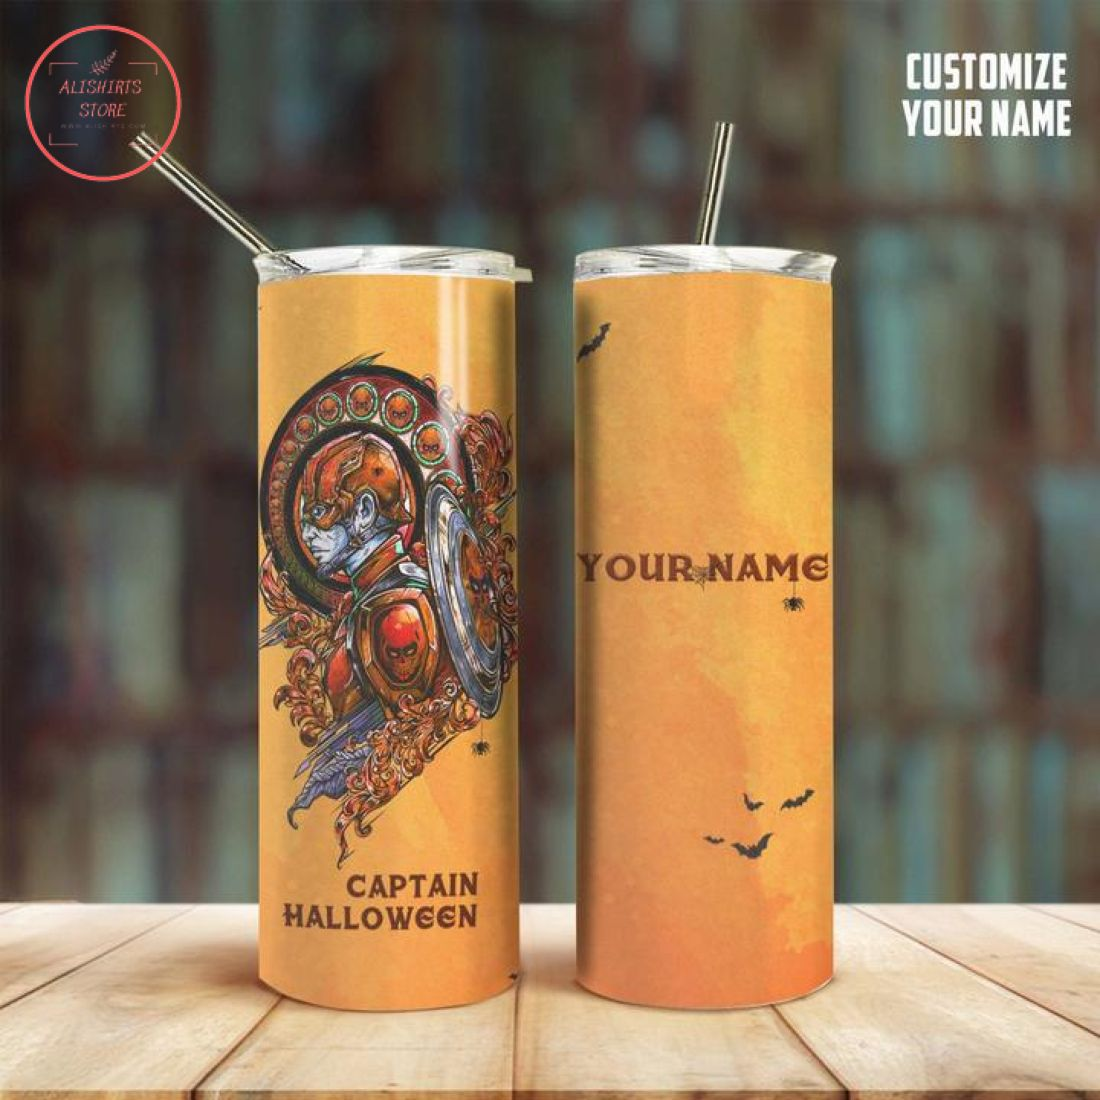 3D Captain Halloween Personalized Stainless Steel Tumbler